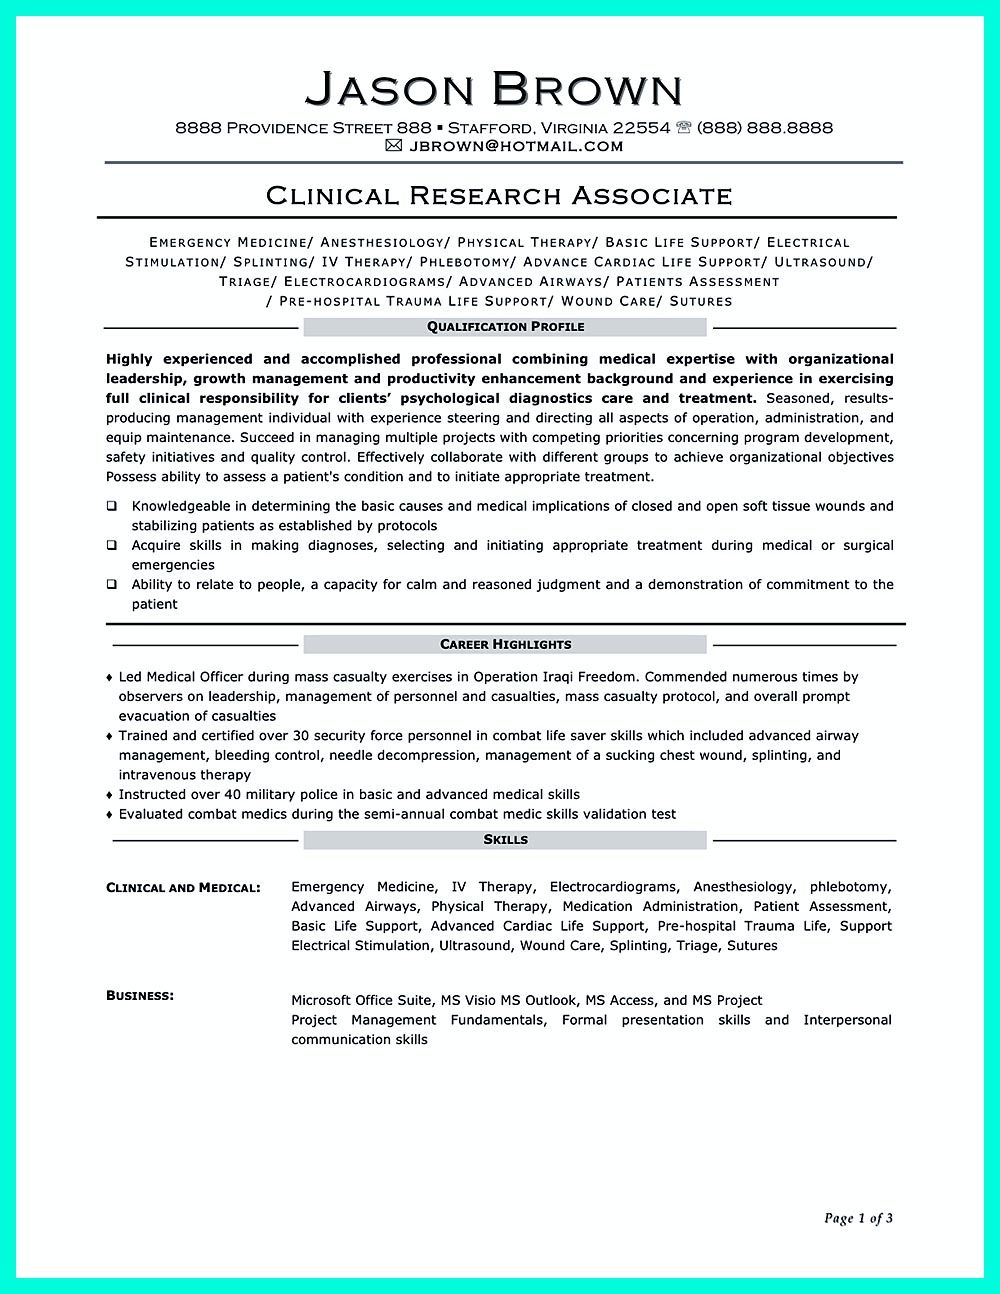 is important in making clinical research associate resume objective good examples format Resume Clinical Research Resume Format For Freshers